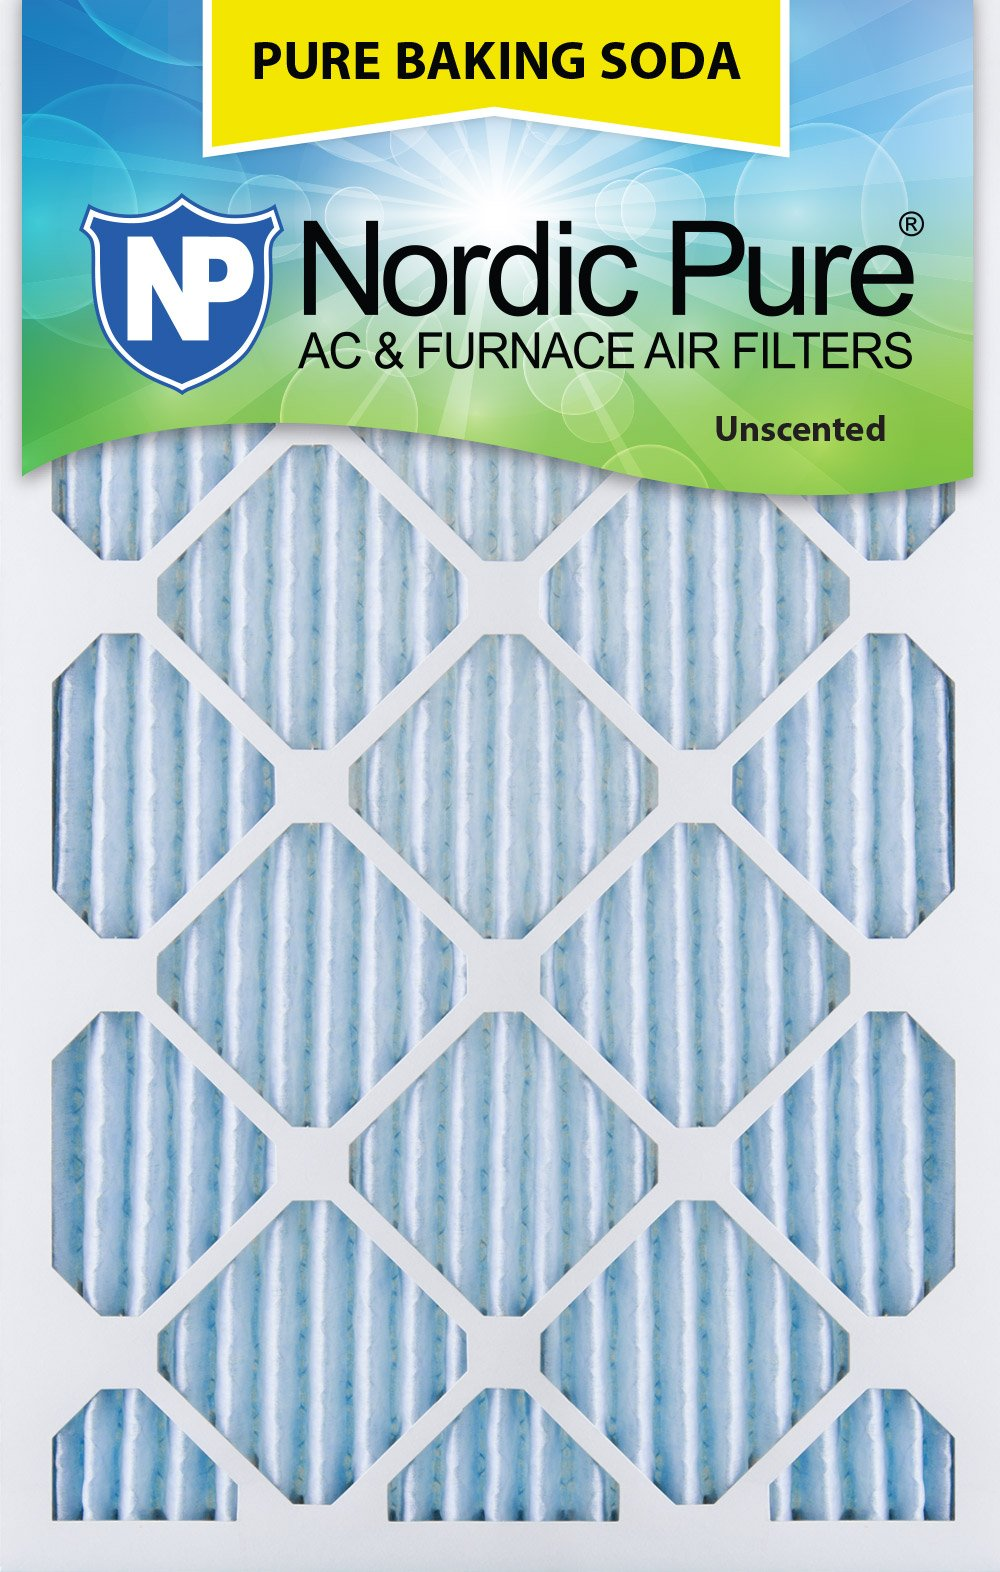 Nordic Pure 14x25x1 Pure Baking Soda Odor Deodorizing AC Furnace Air Filters, 3 Pack 14'' x 25'' x 1'' 3